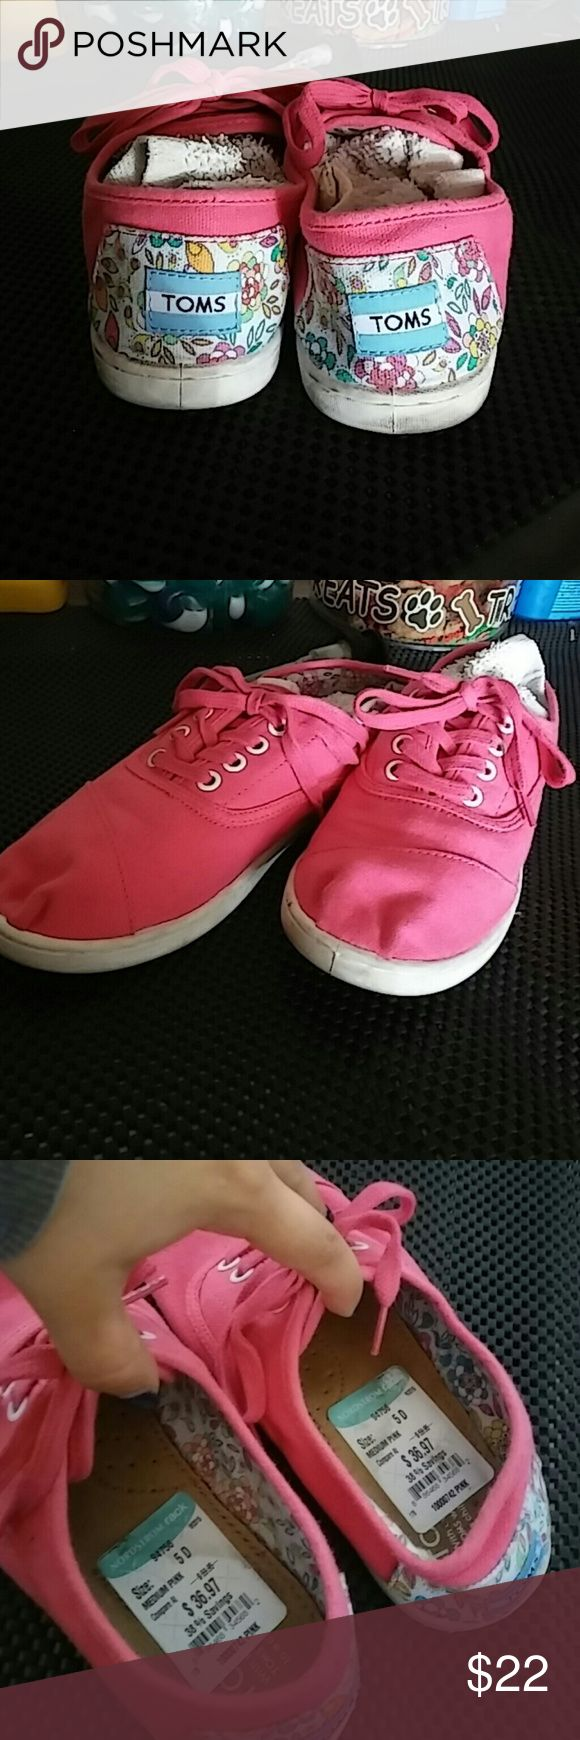 Floral hot pink toms sneaker Brand new ! Used once for a photo shoot. Still has tags attached to them.  Purchased from Nordstrom. Smoke free home... TOMS Shoes